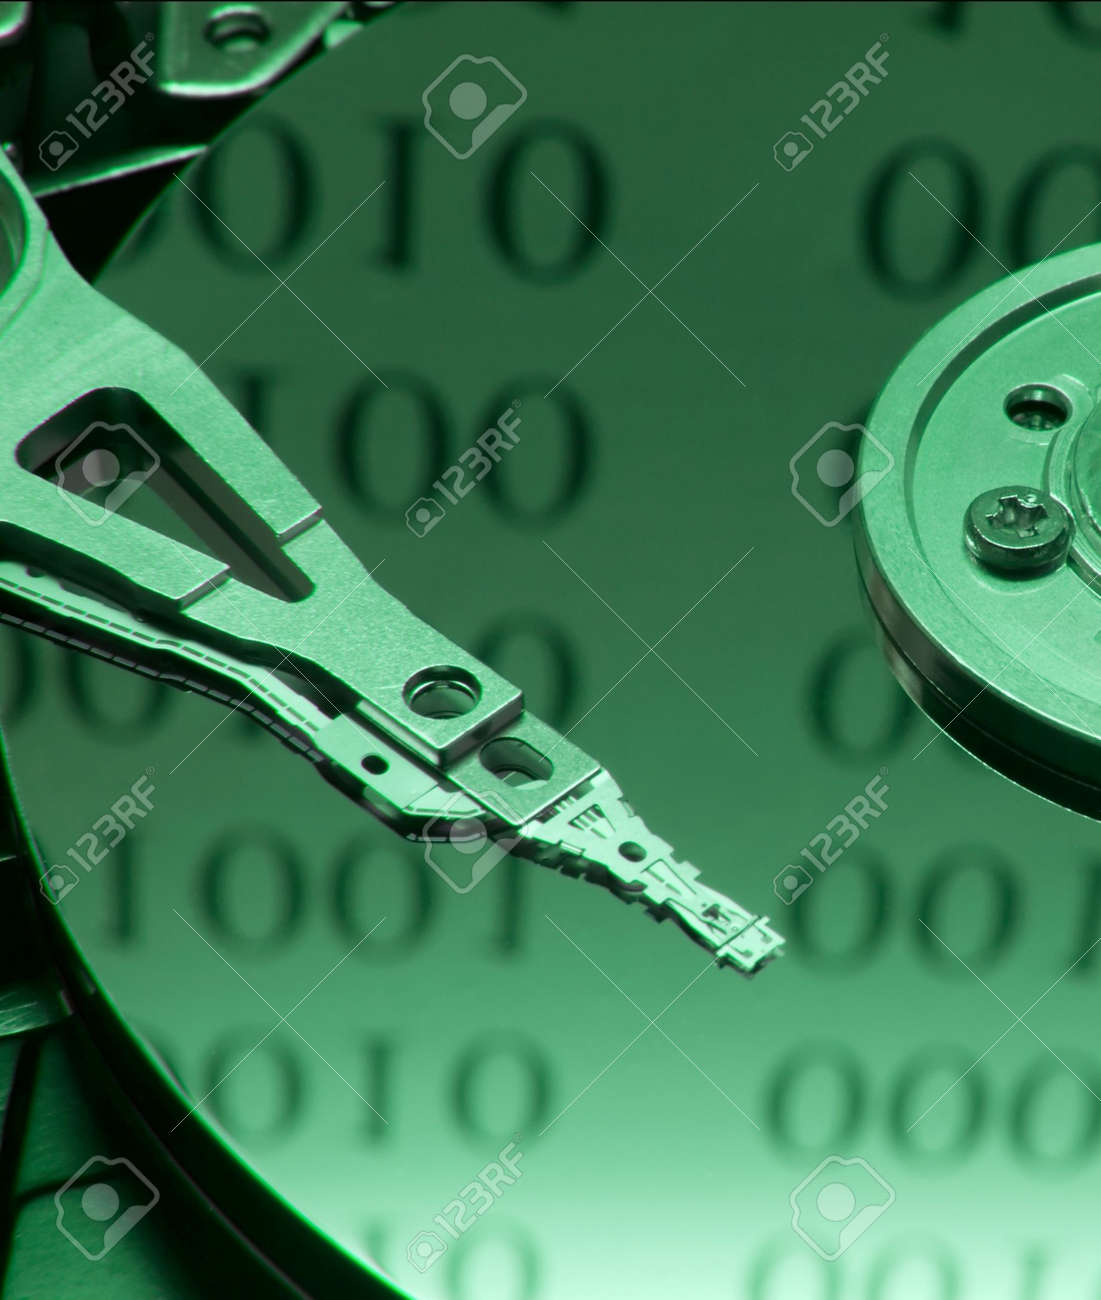 Internals of on open harddisk ith binary code reflection Stock Photo - 794715